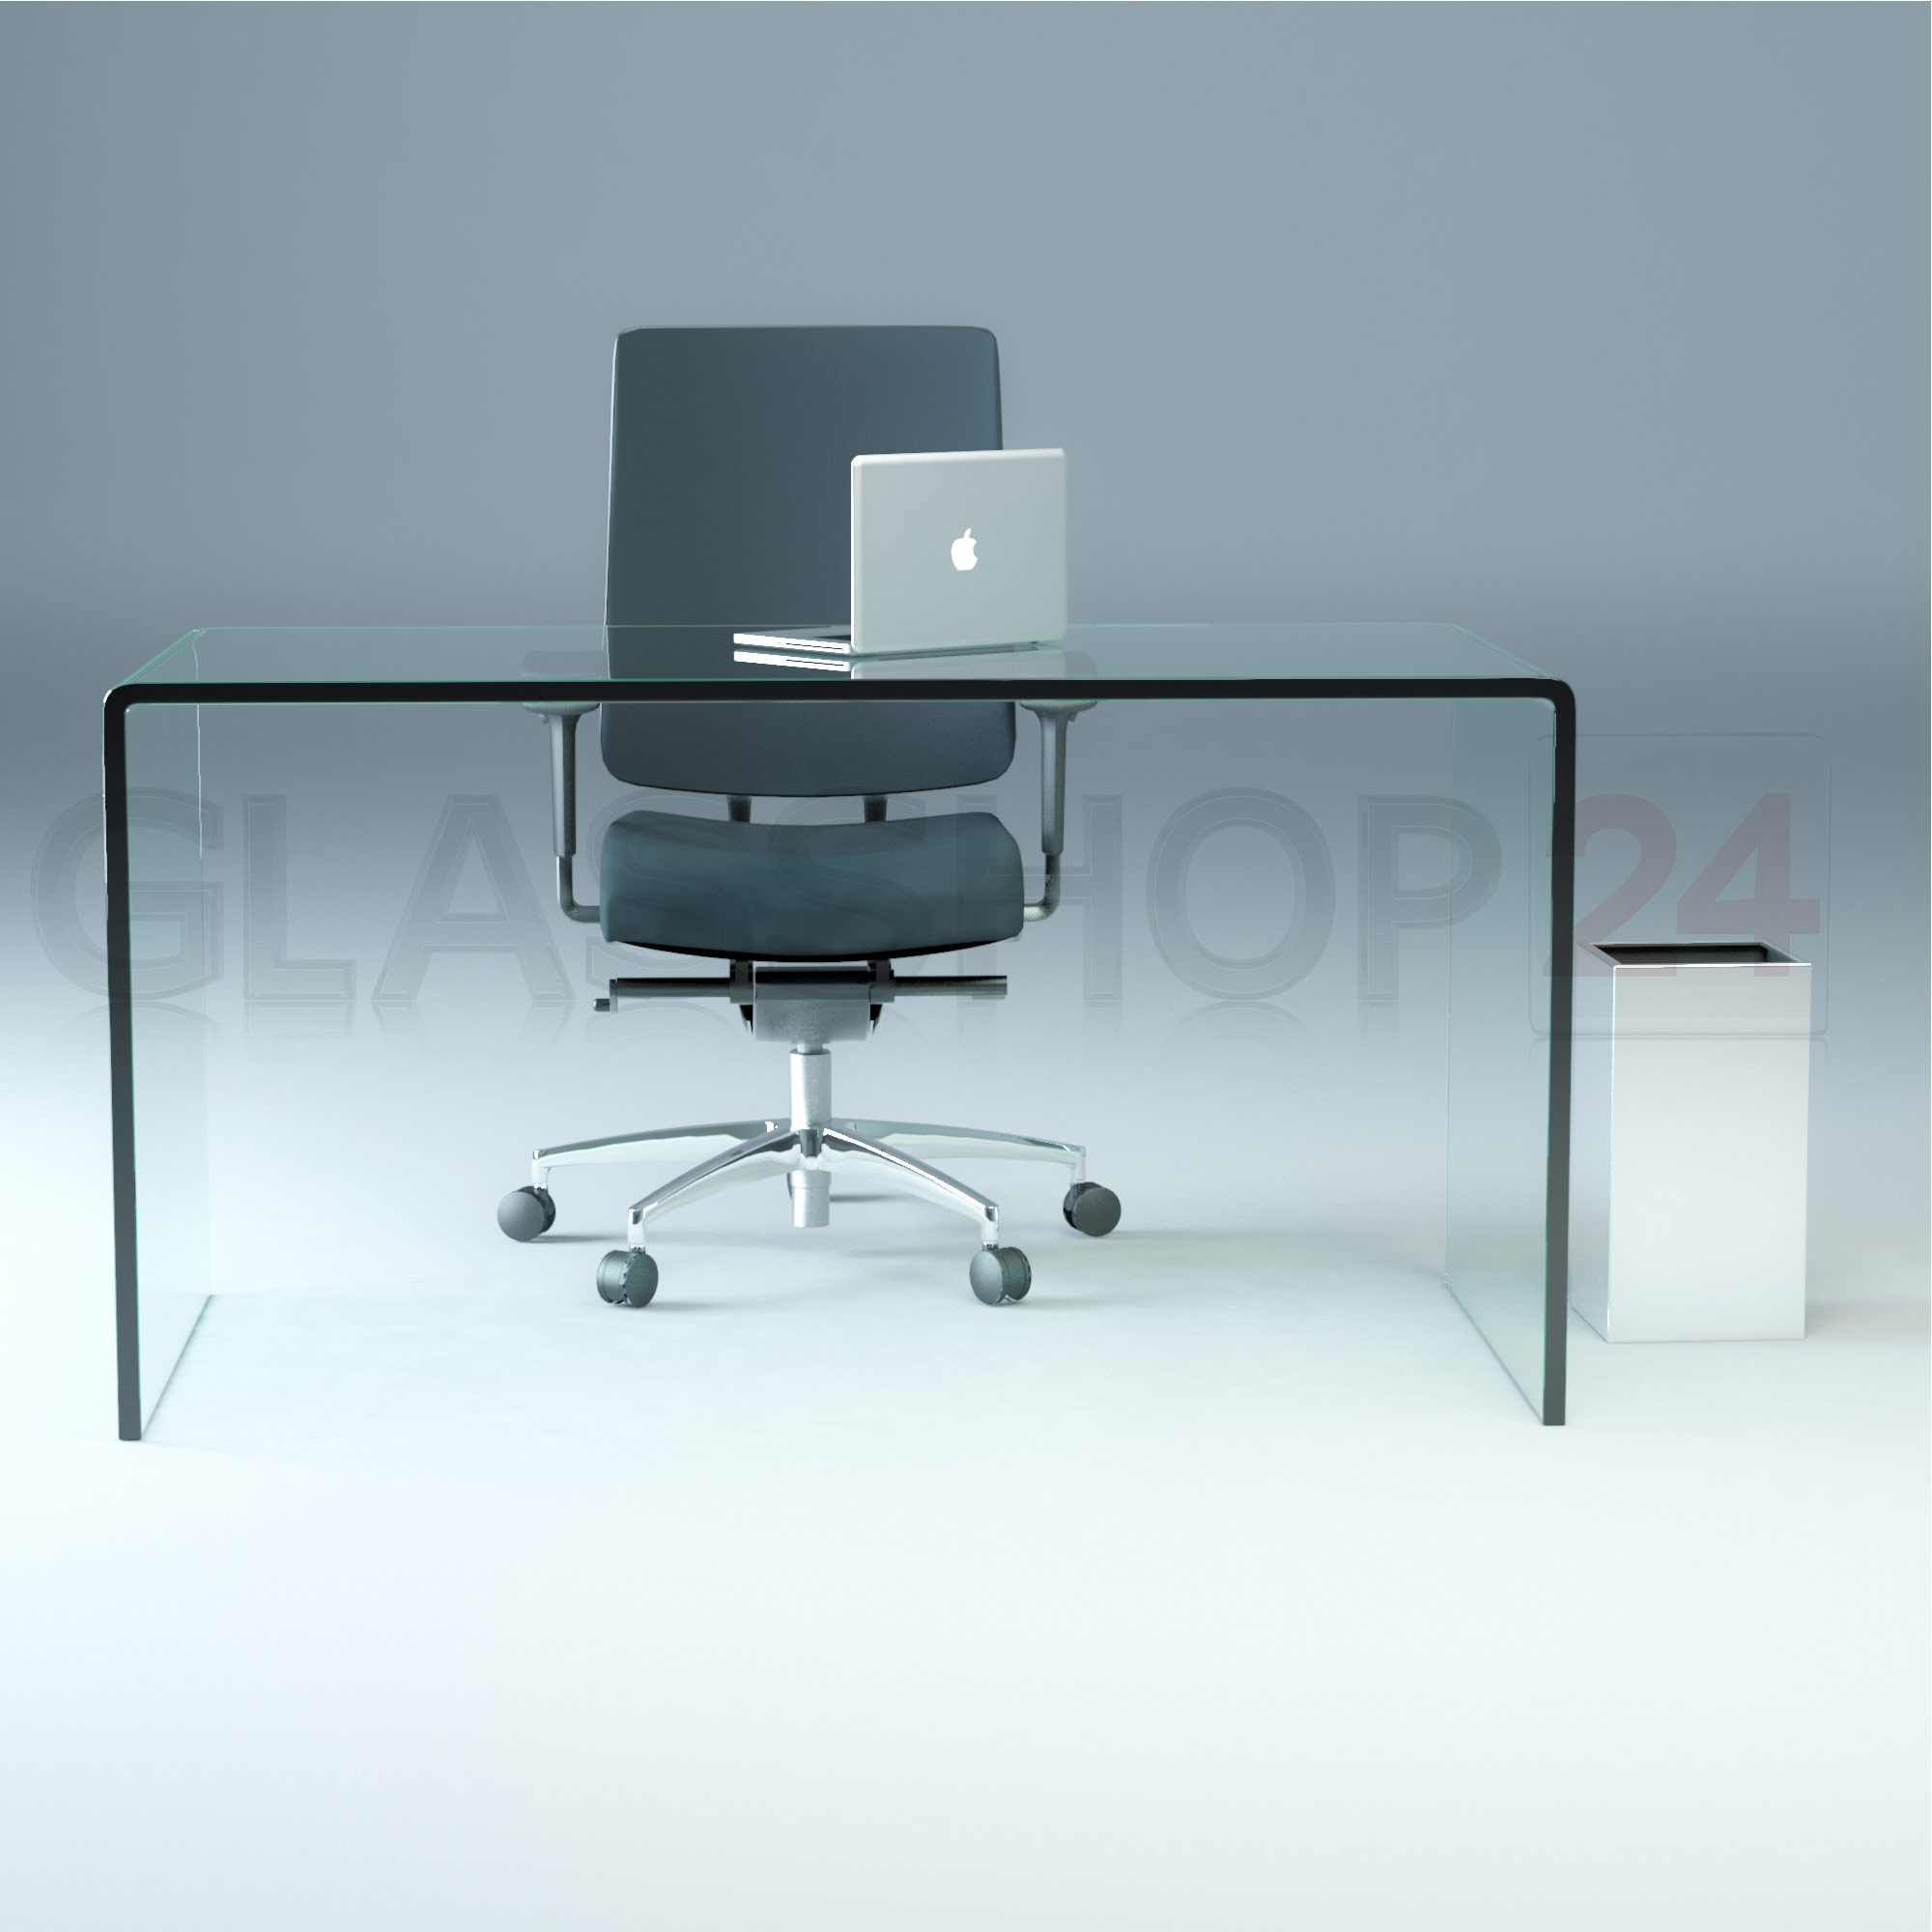 design glas schreibtisch 15mm echtglas b t h 140x70x73cm glas tisch ebay. Black Bedroom Furniture Sets. Home Design Ideas